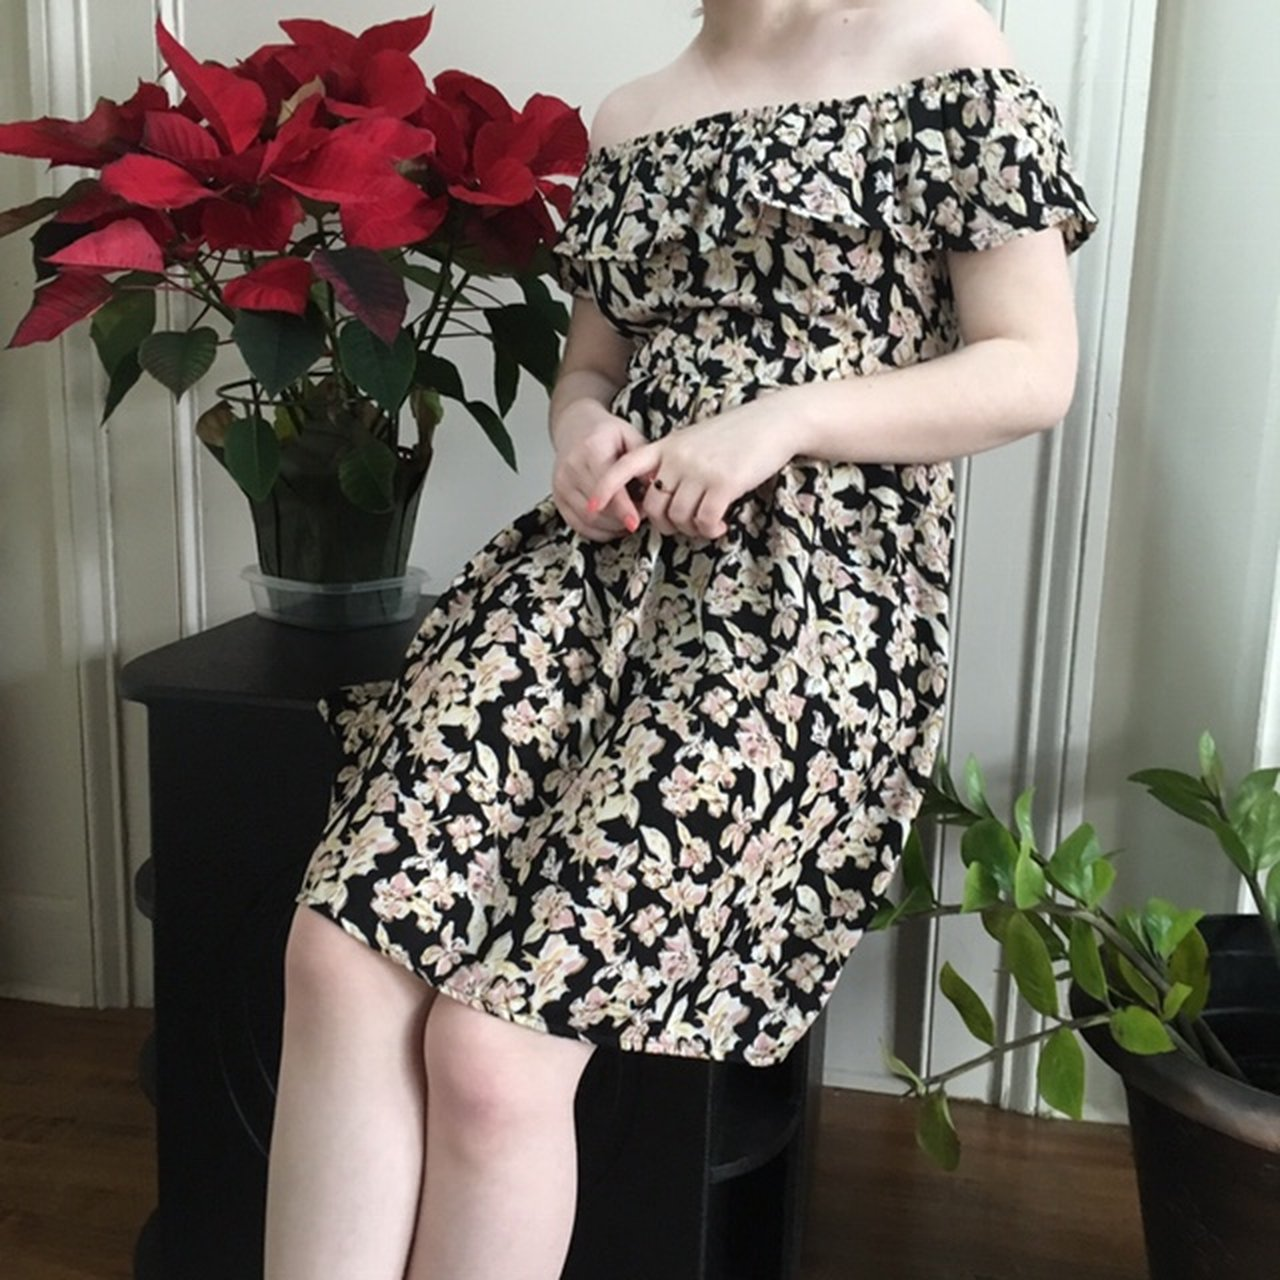 d63d23ee793 @loopzoopii. 10 hours ago. Augusta, United States. Off the shoulder floral  dress